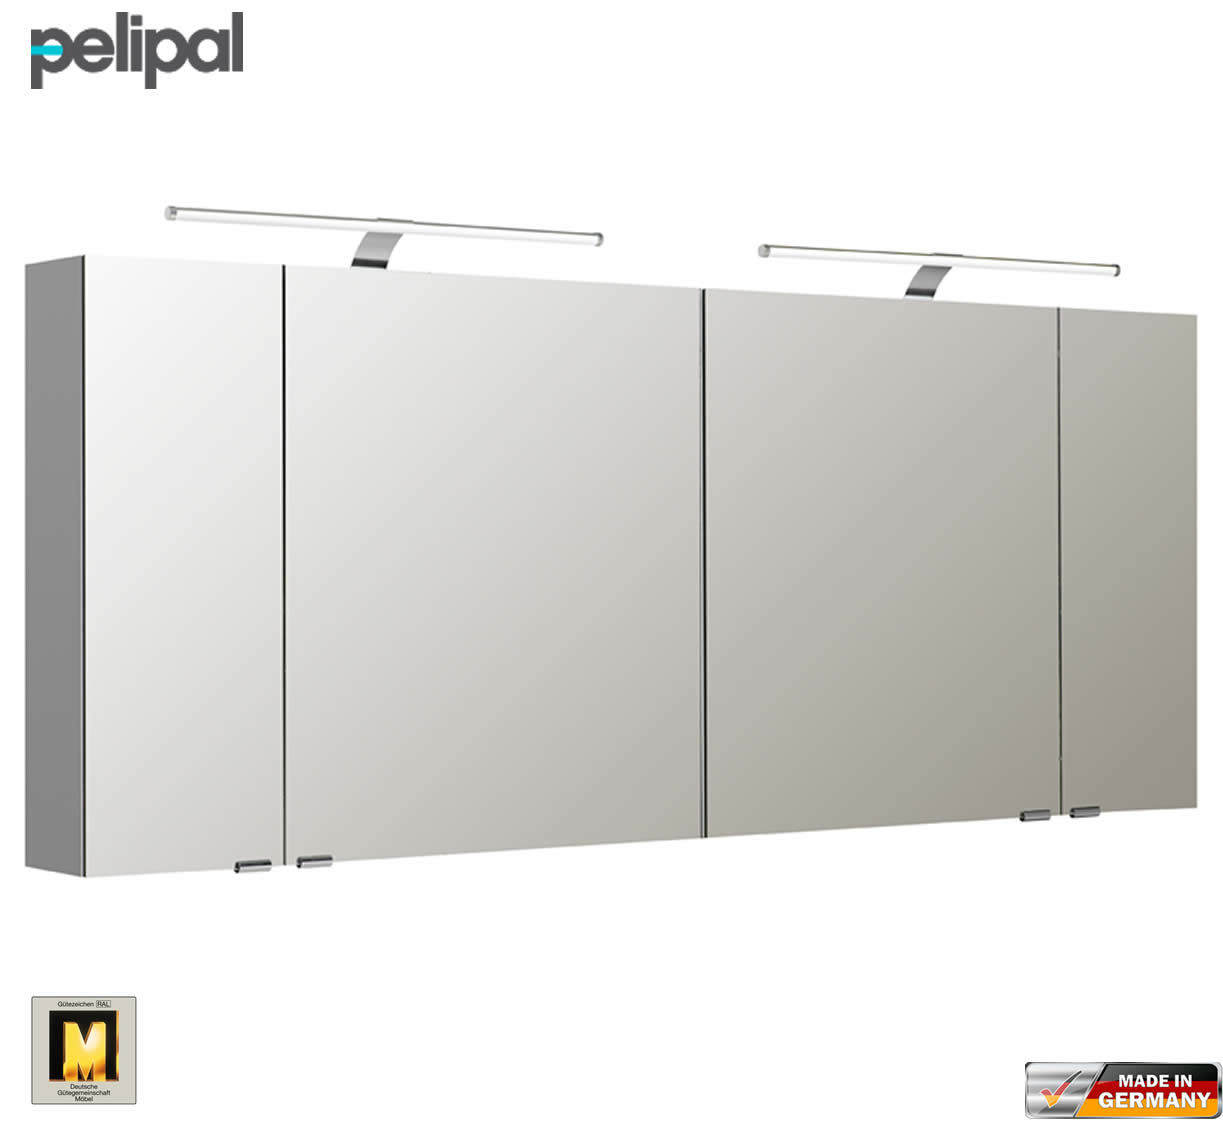 pelipal neutraler spiegelschrank s5 170 cm mit 2 led aufbauleuchten impulsbad. Black Bedroom Furniture Sets. Home Design Ideas